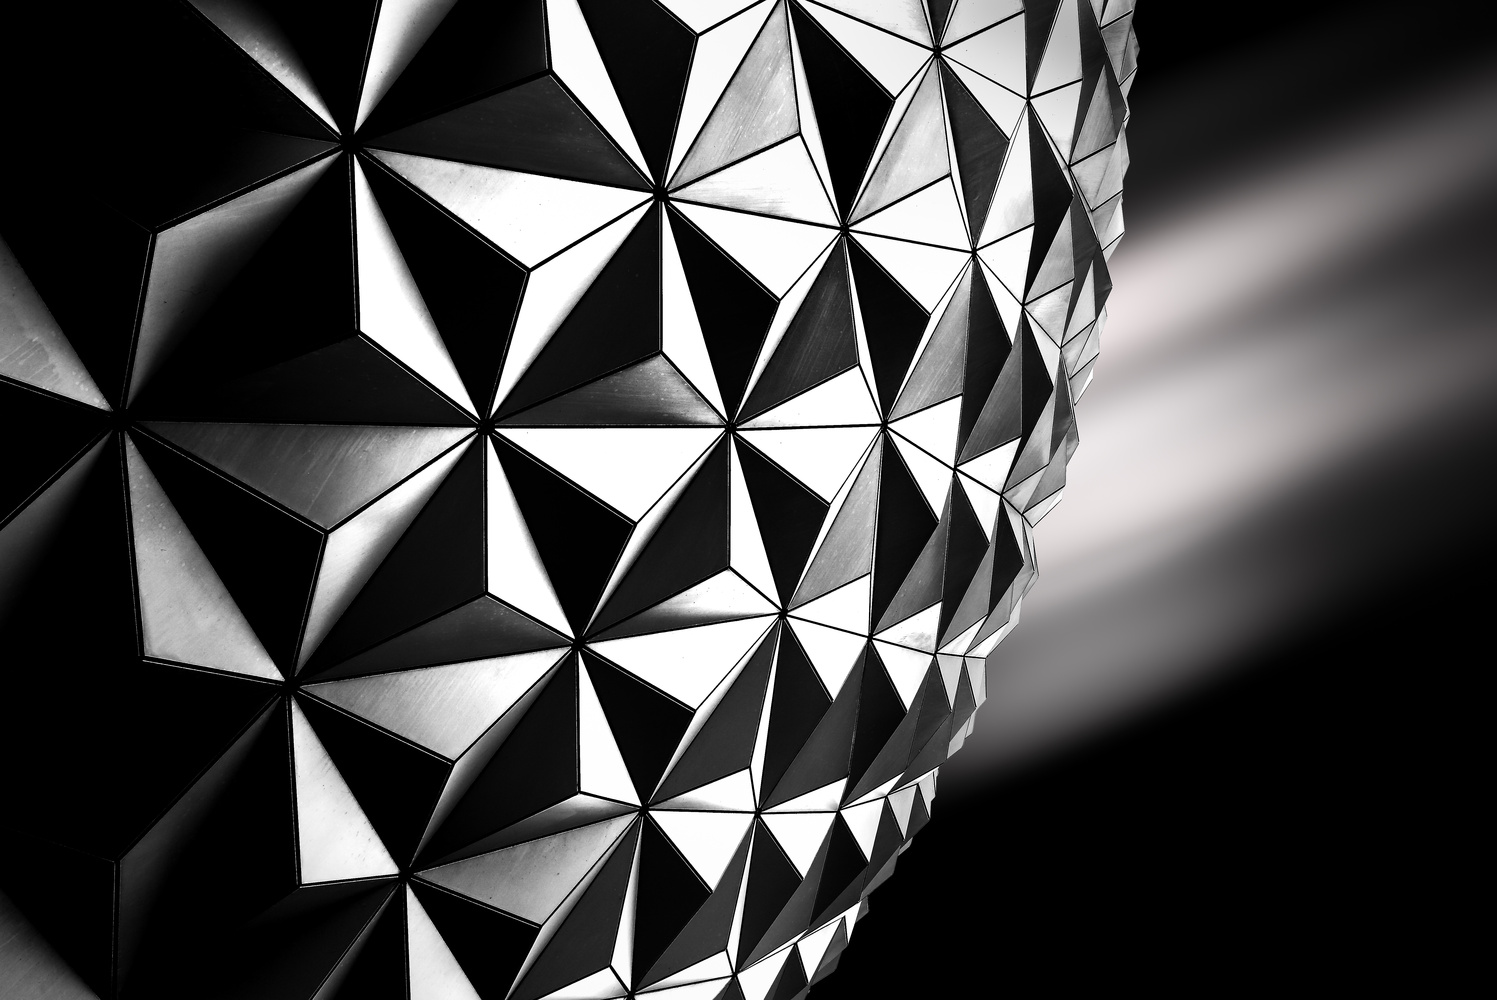 Spaceship Earth by Andrew Weiss